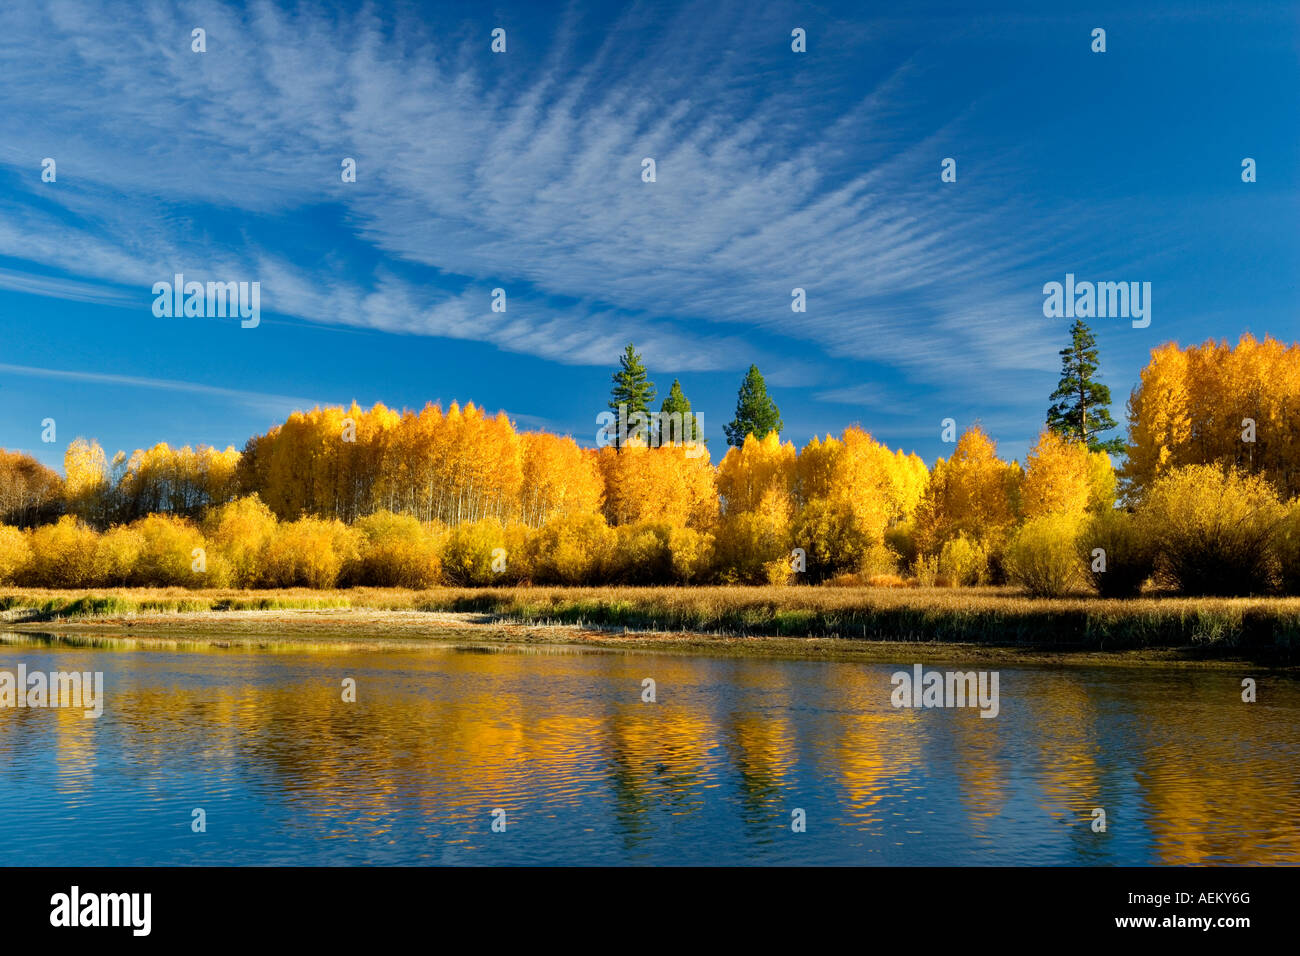 Fall colored aspen trees and Deschutes River Central Oregon - Stock Image